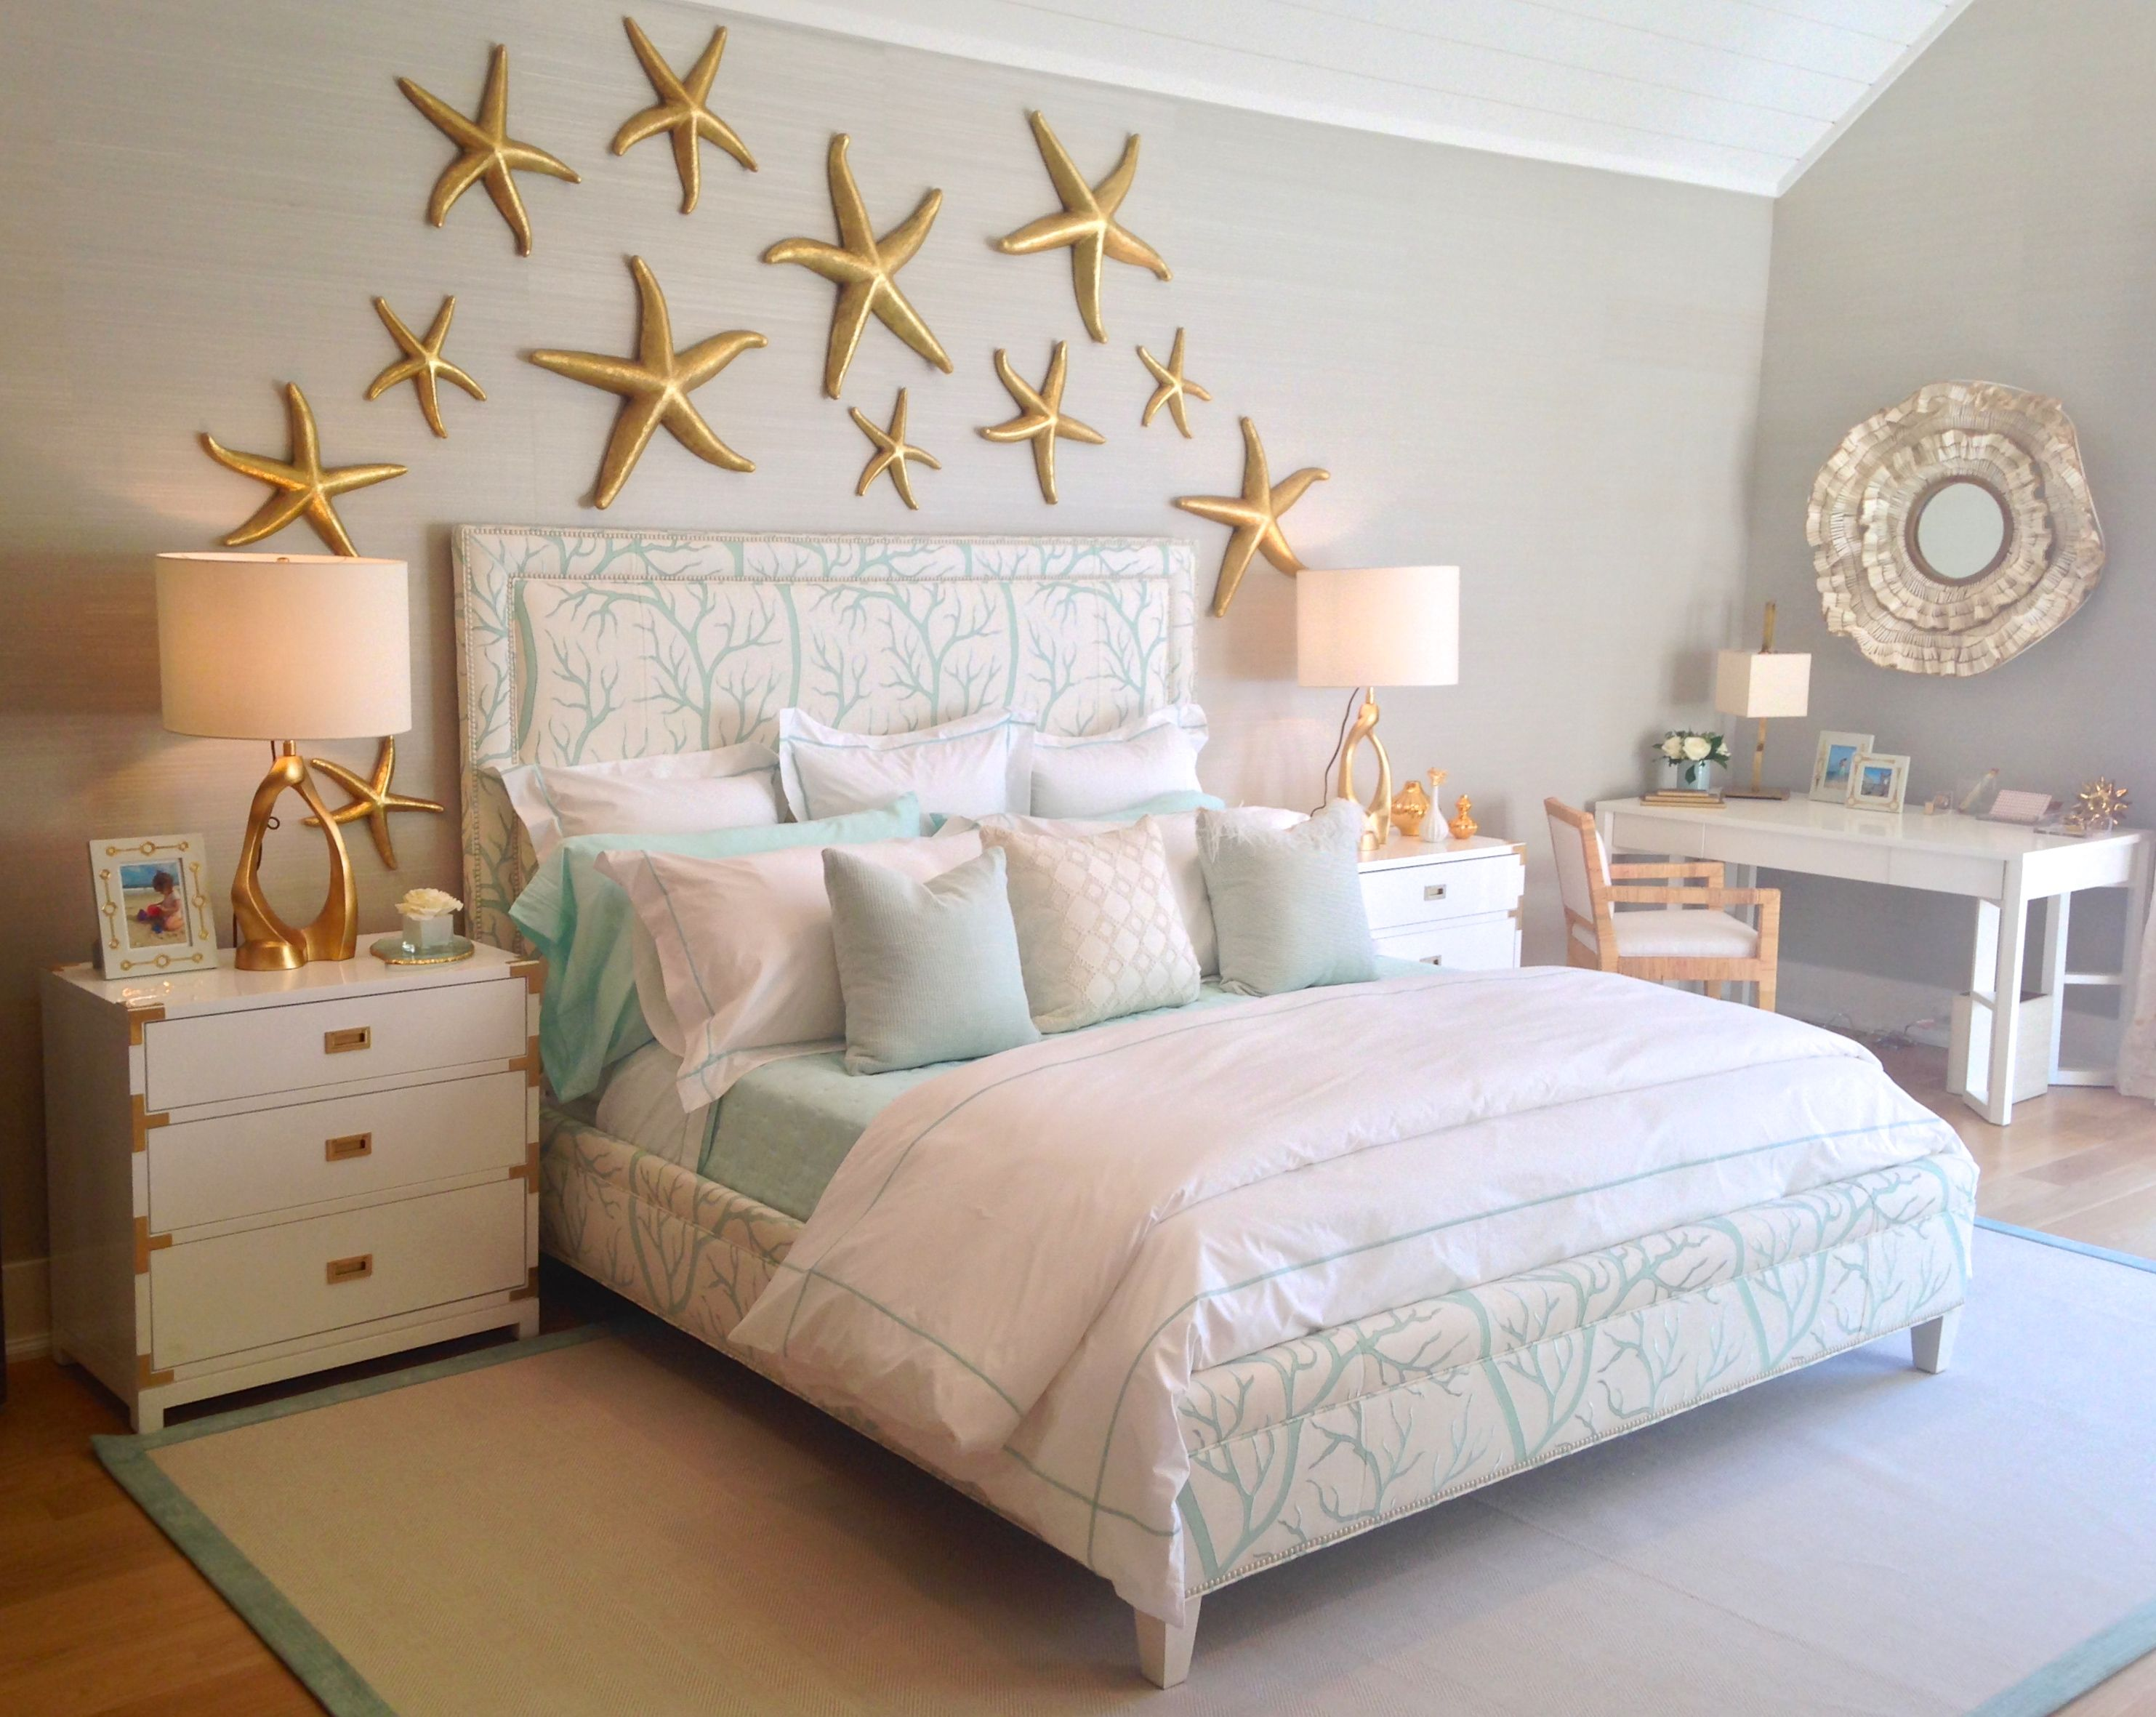 best 25 beach themed rooms ideas that you will like on pinterest